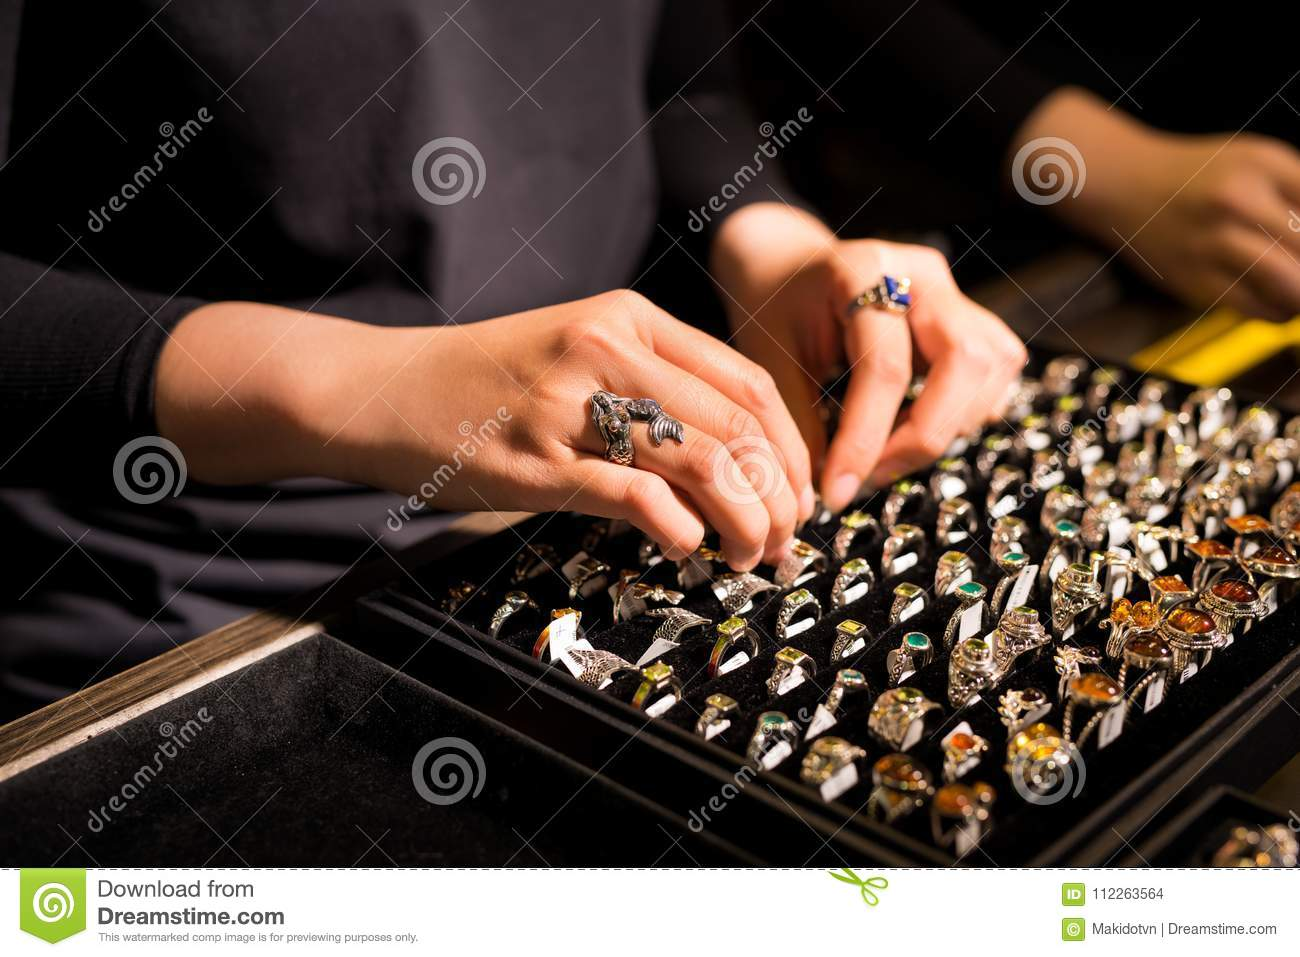 Presentation of retail showcase in jewellery store with rings